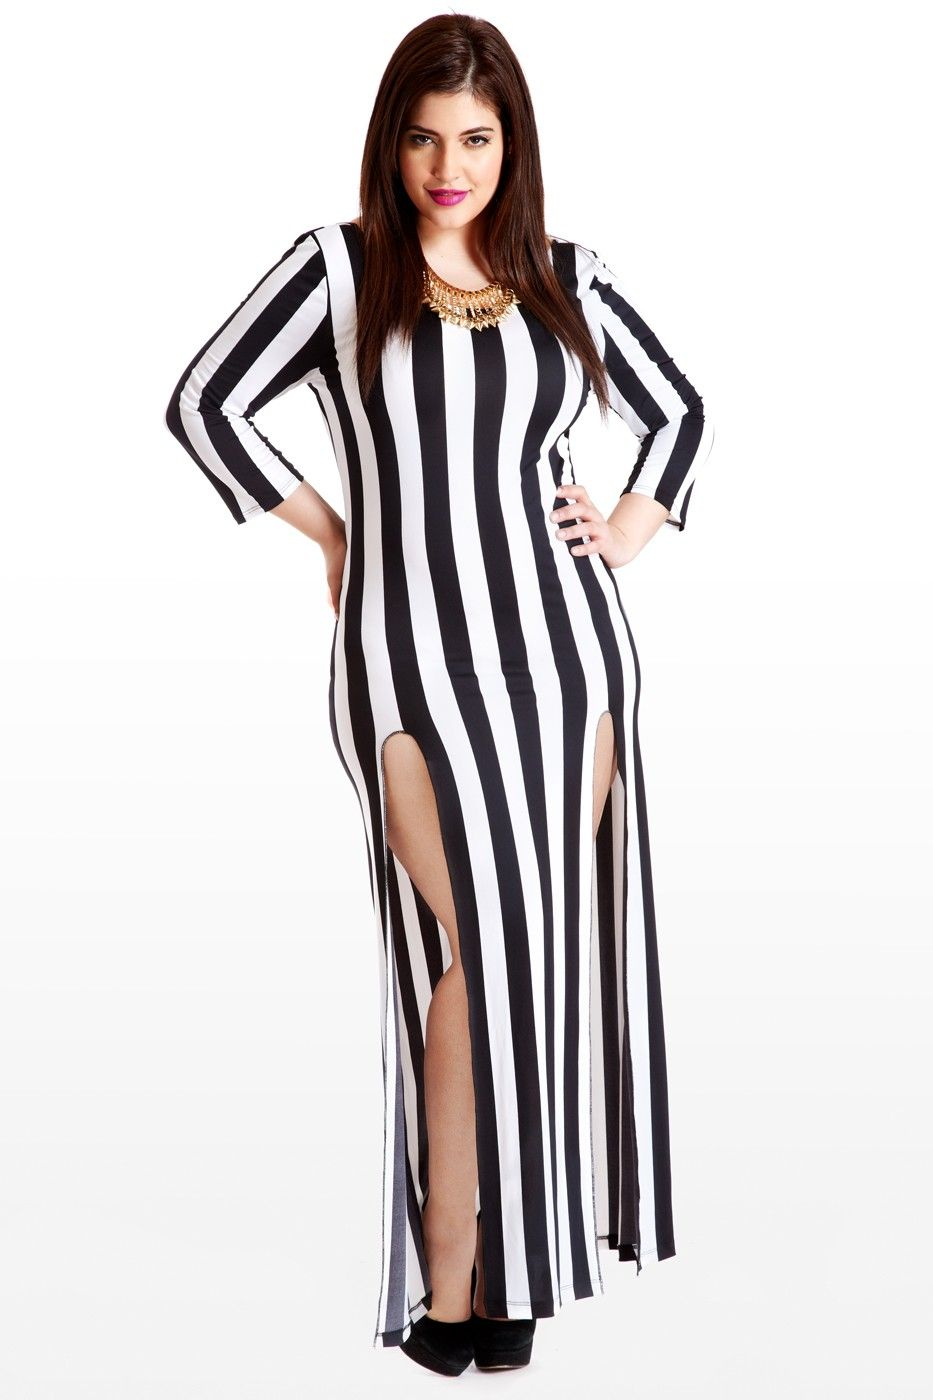 Plus Size Tall And Short Of It Maxi Dress Plus Size Maxi Dresses Maxi Dress Dresses [ 1400 x 933 Pixel ]